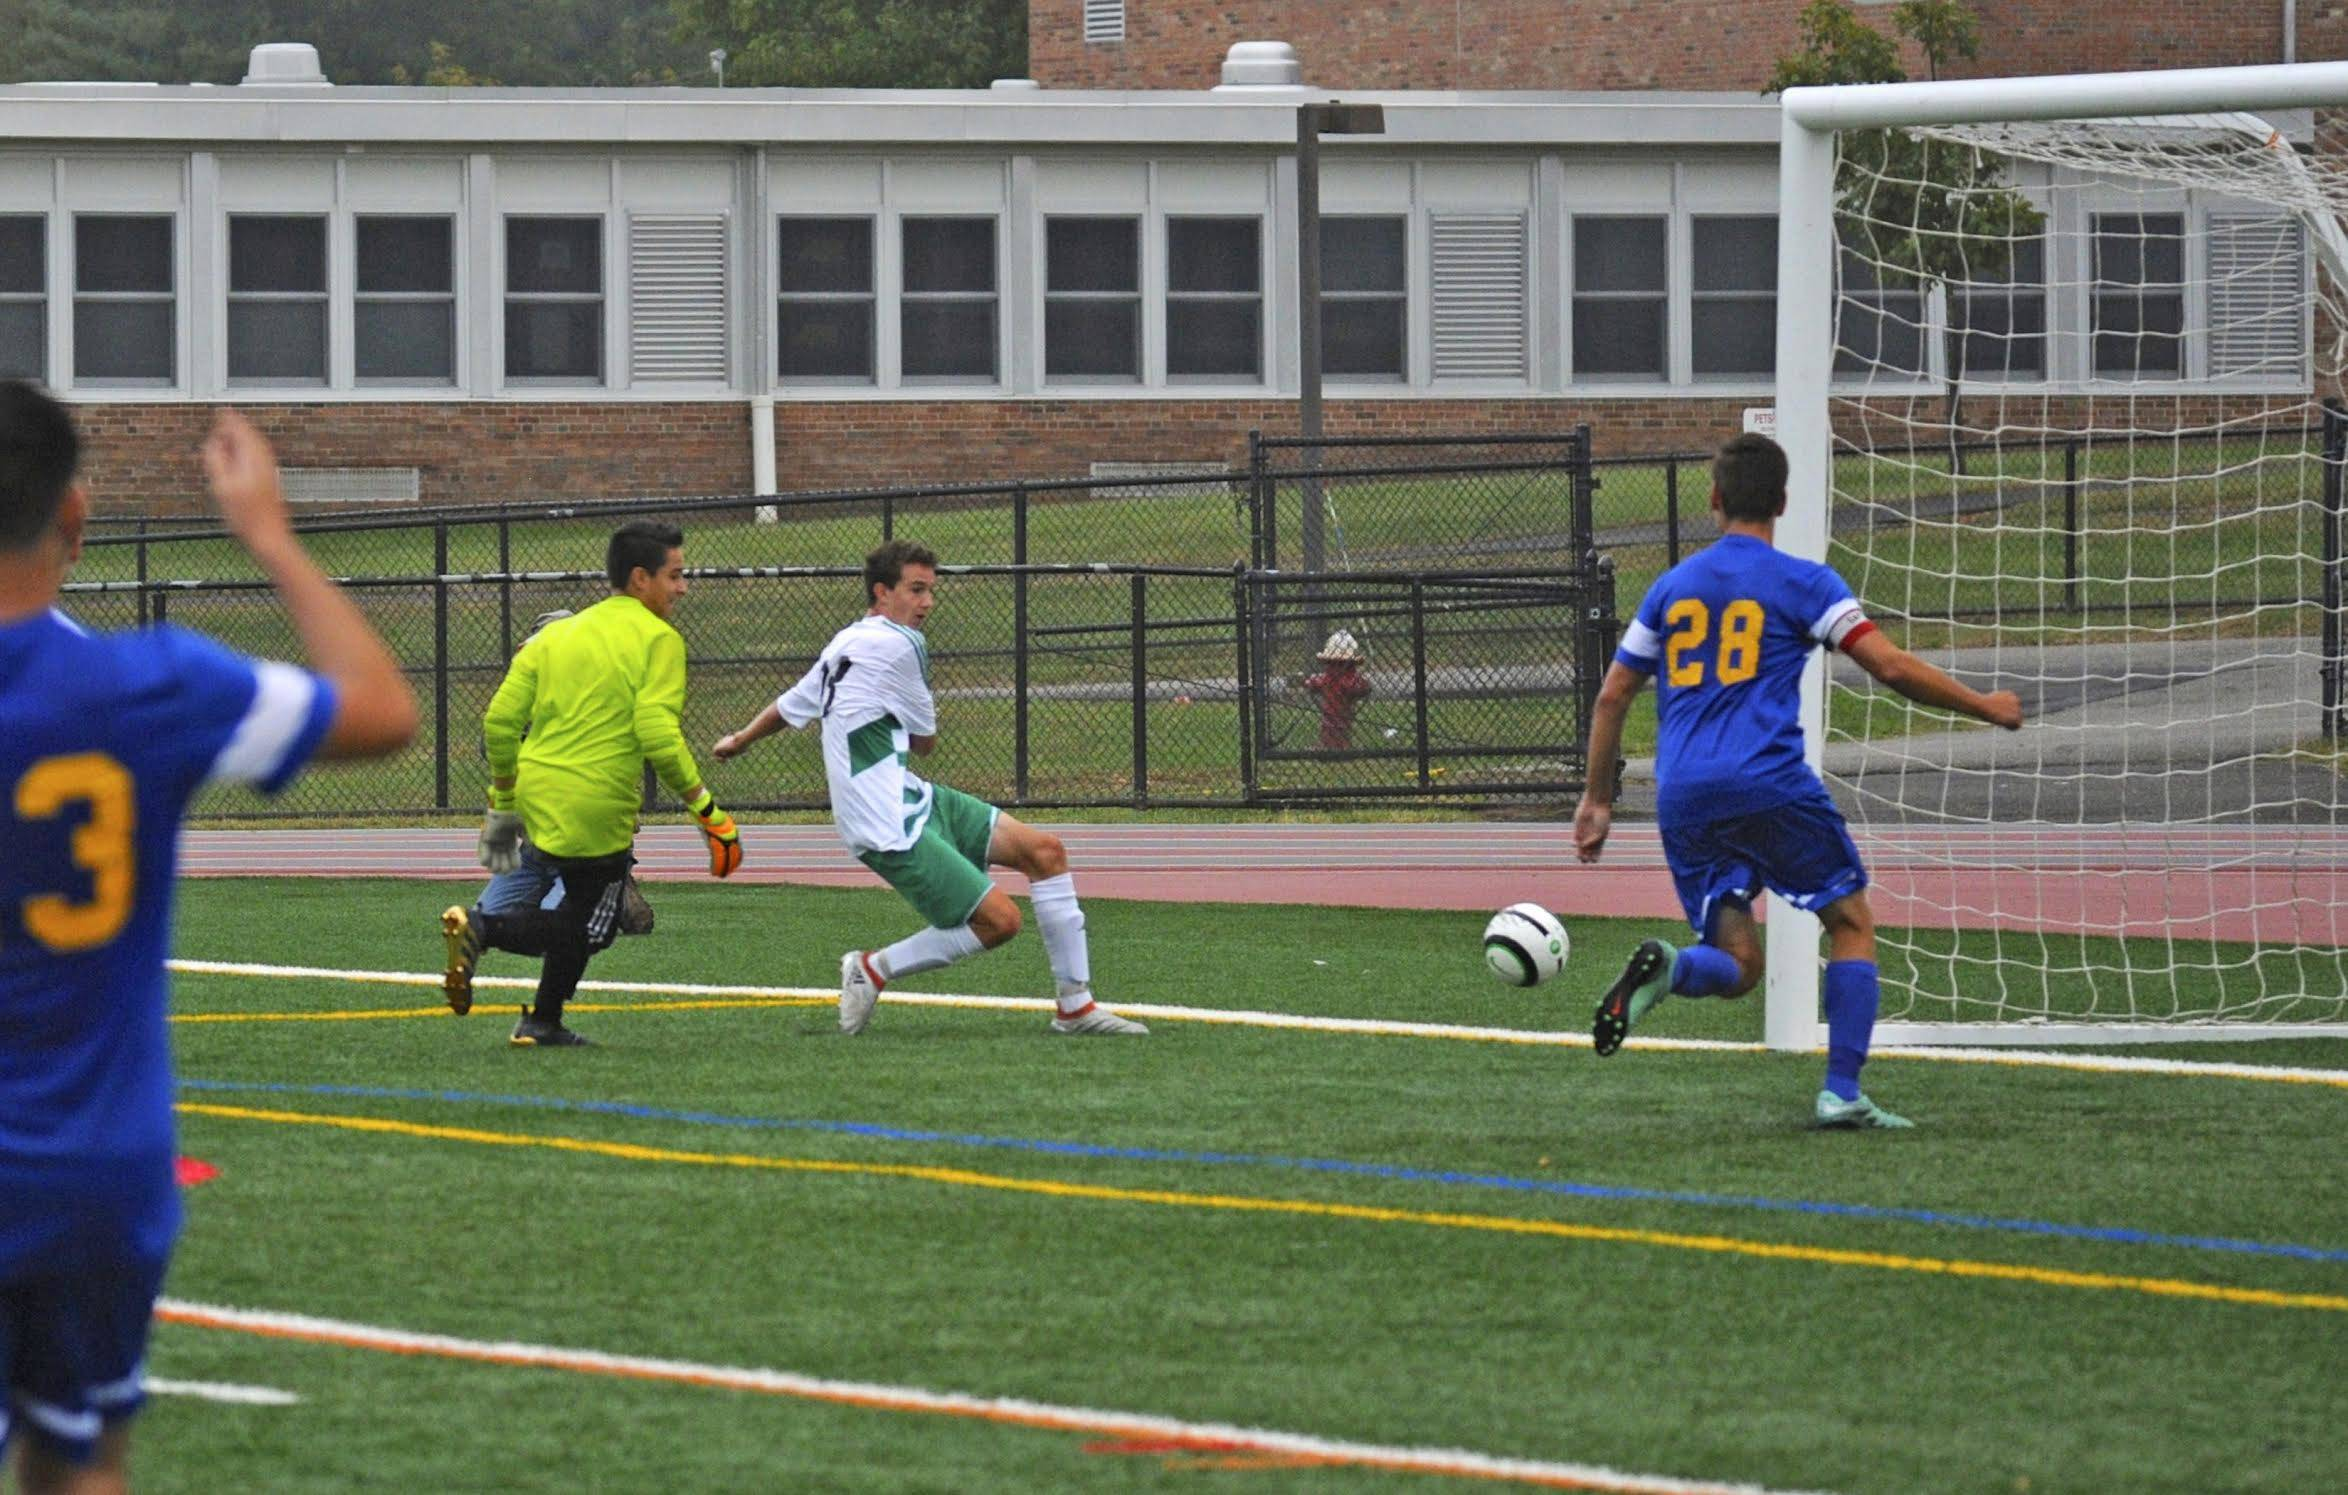 essay on soccer game continuous writing spm essay the philly  photo essay ridge boys soccer takes command on the field ridge s mark stachowski scoring the